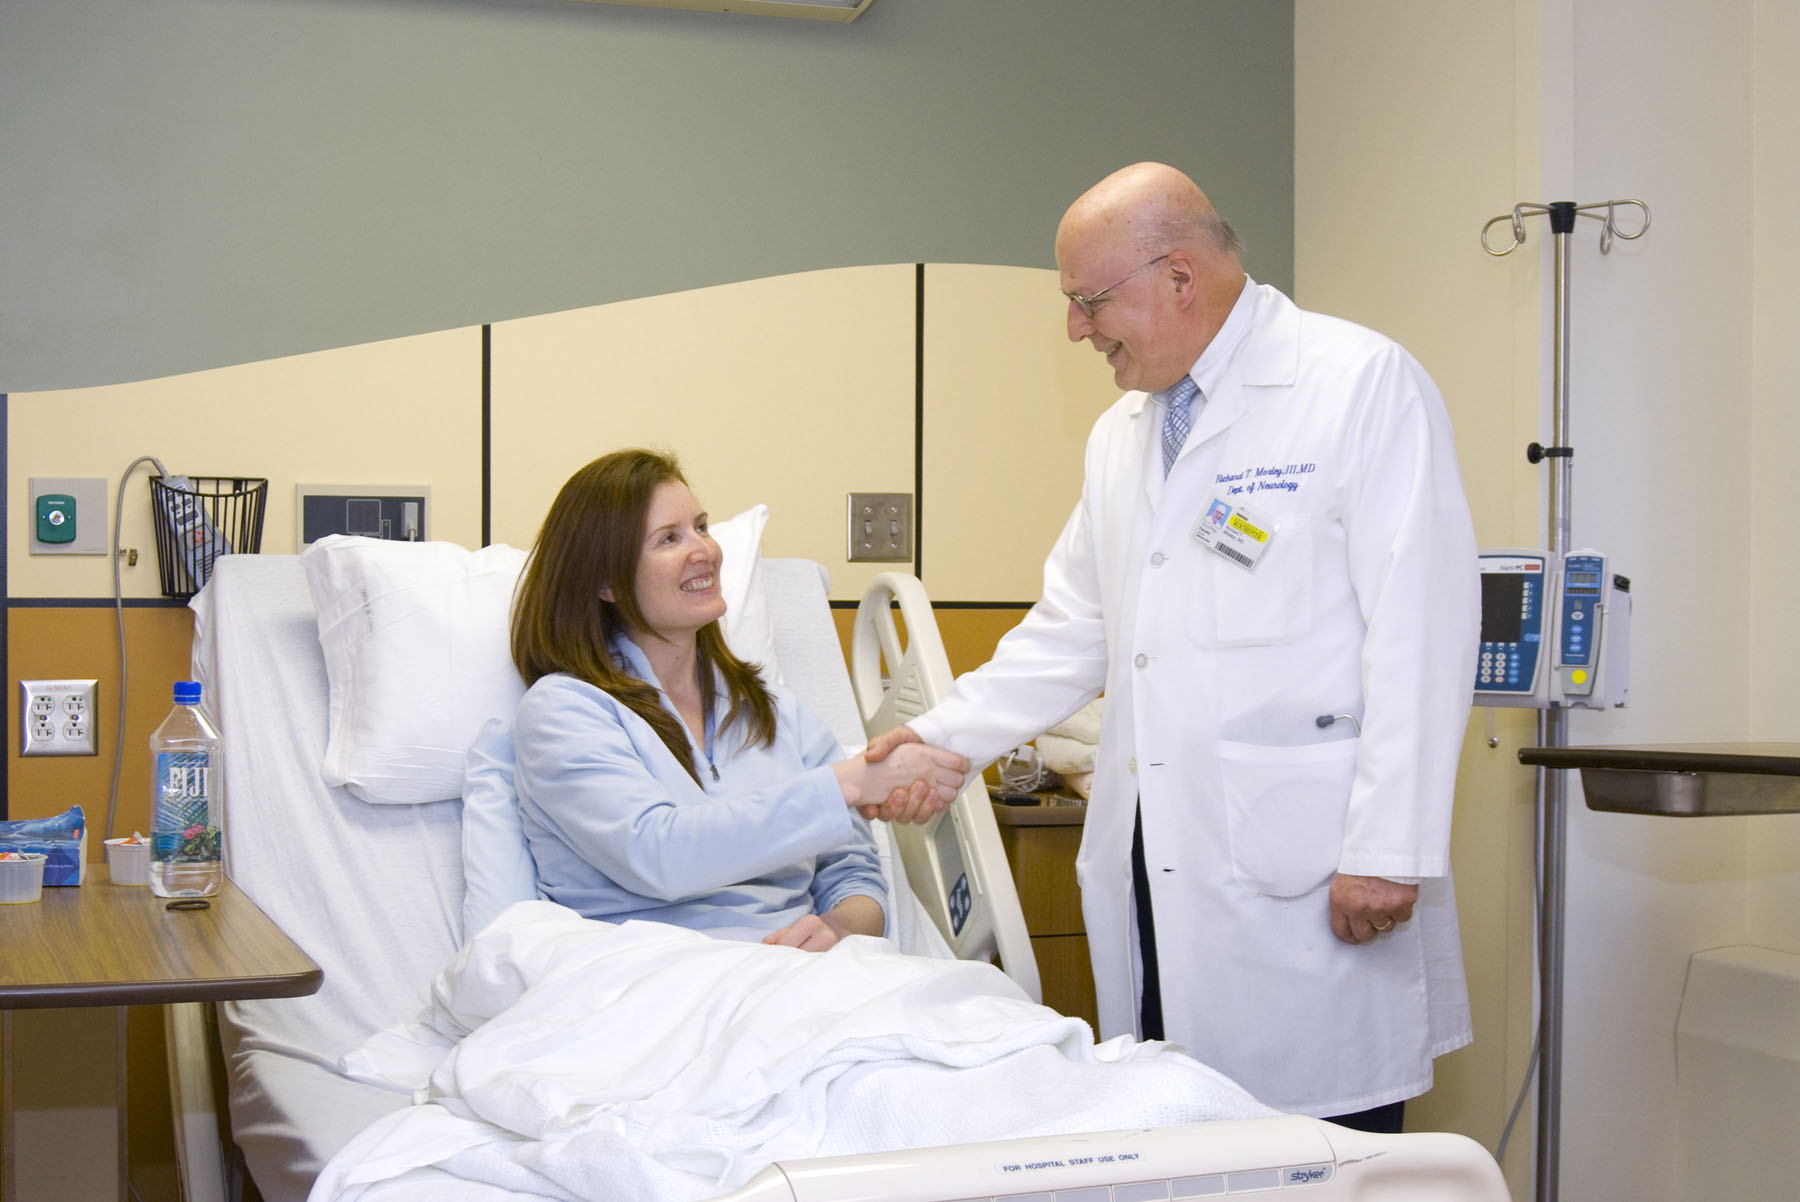 a providers meets with a patient